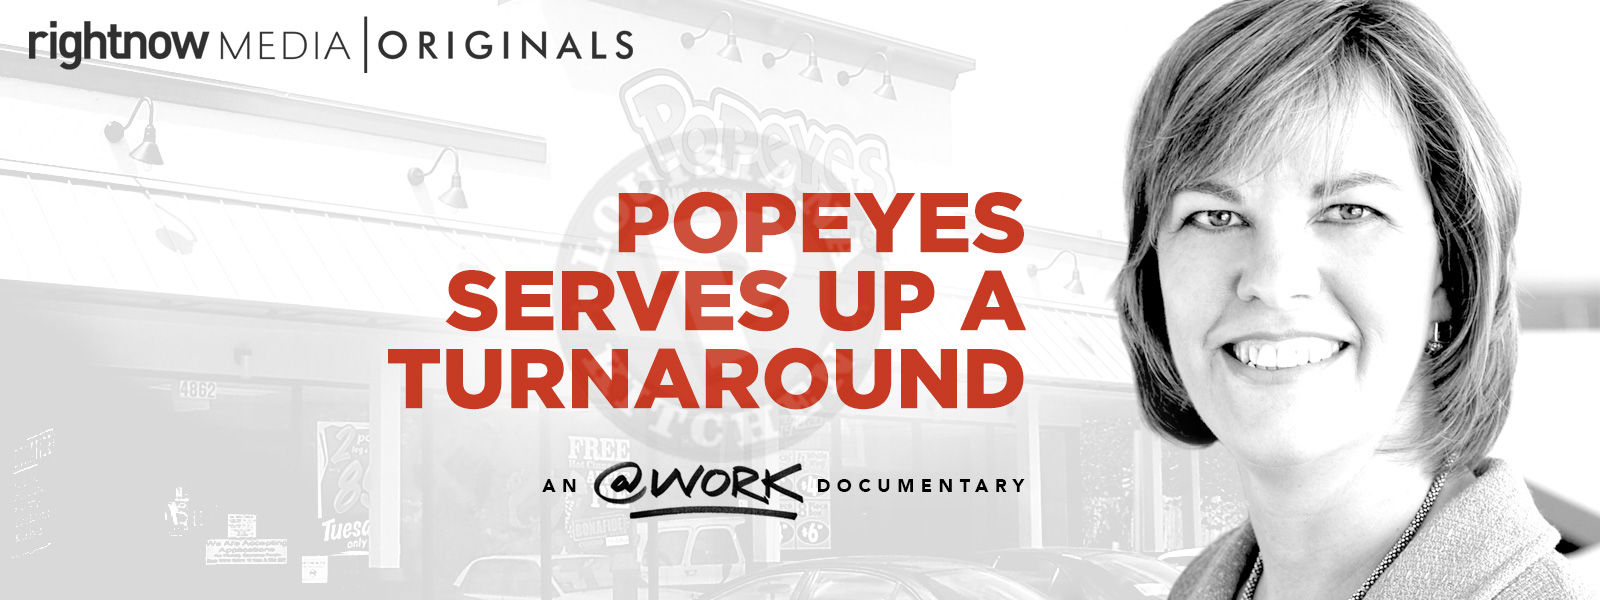 Popeyes Serves Up A Turnaround